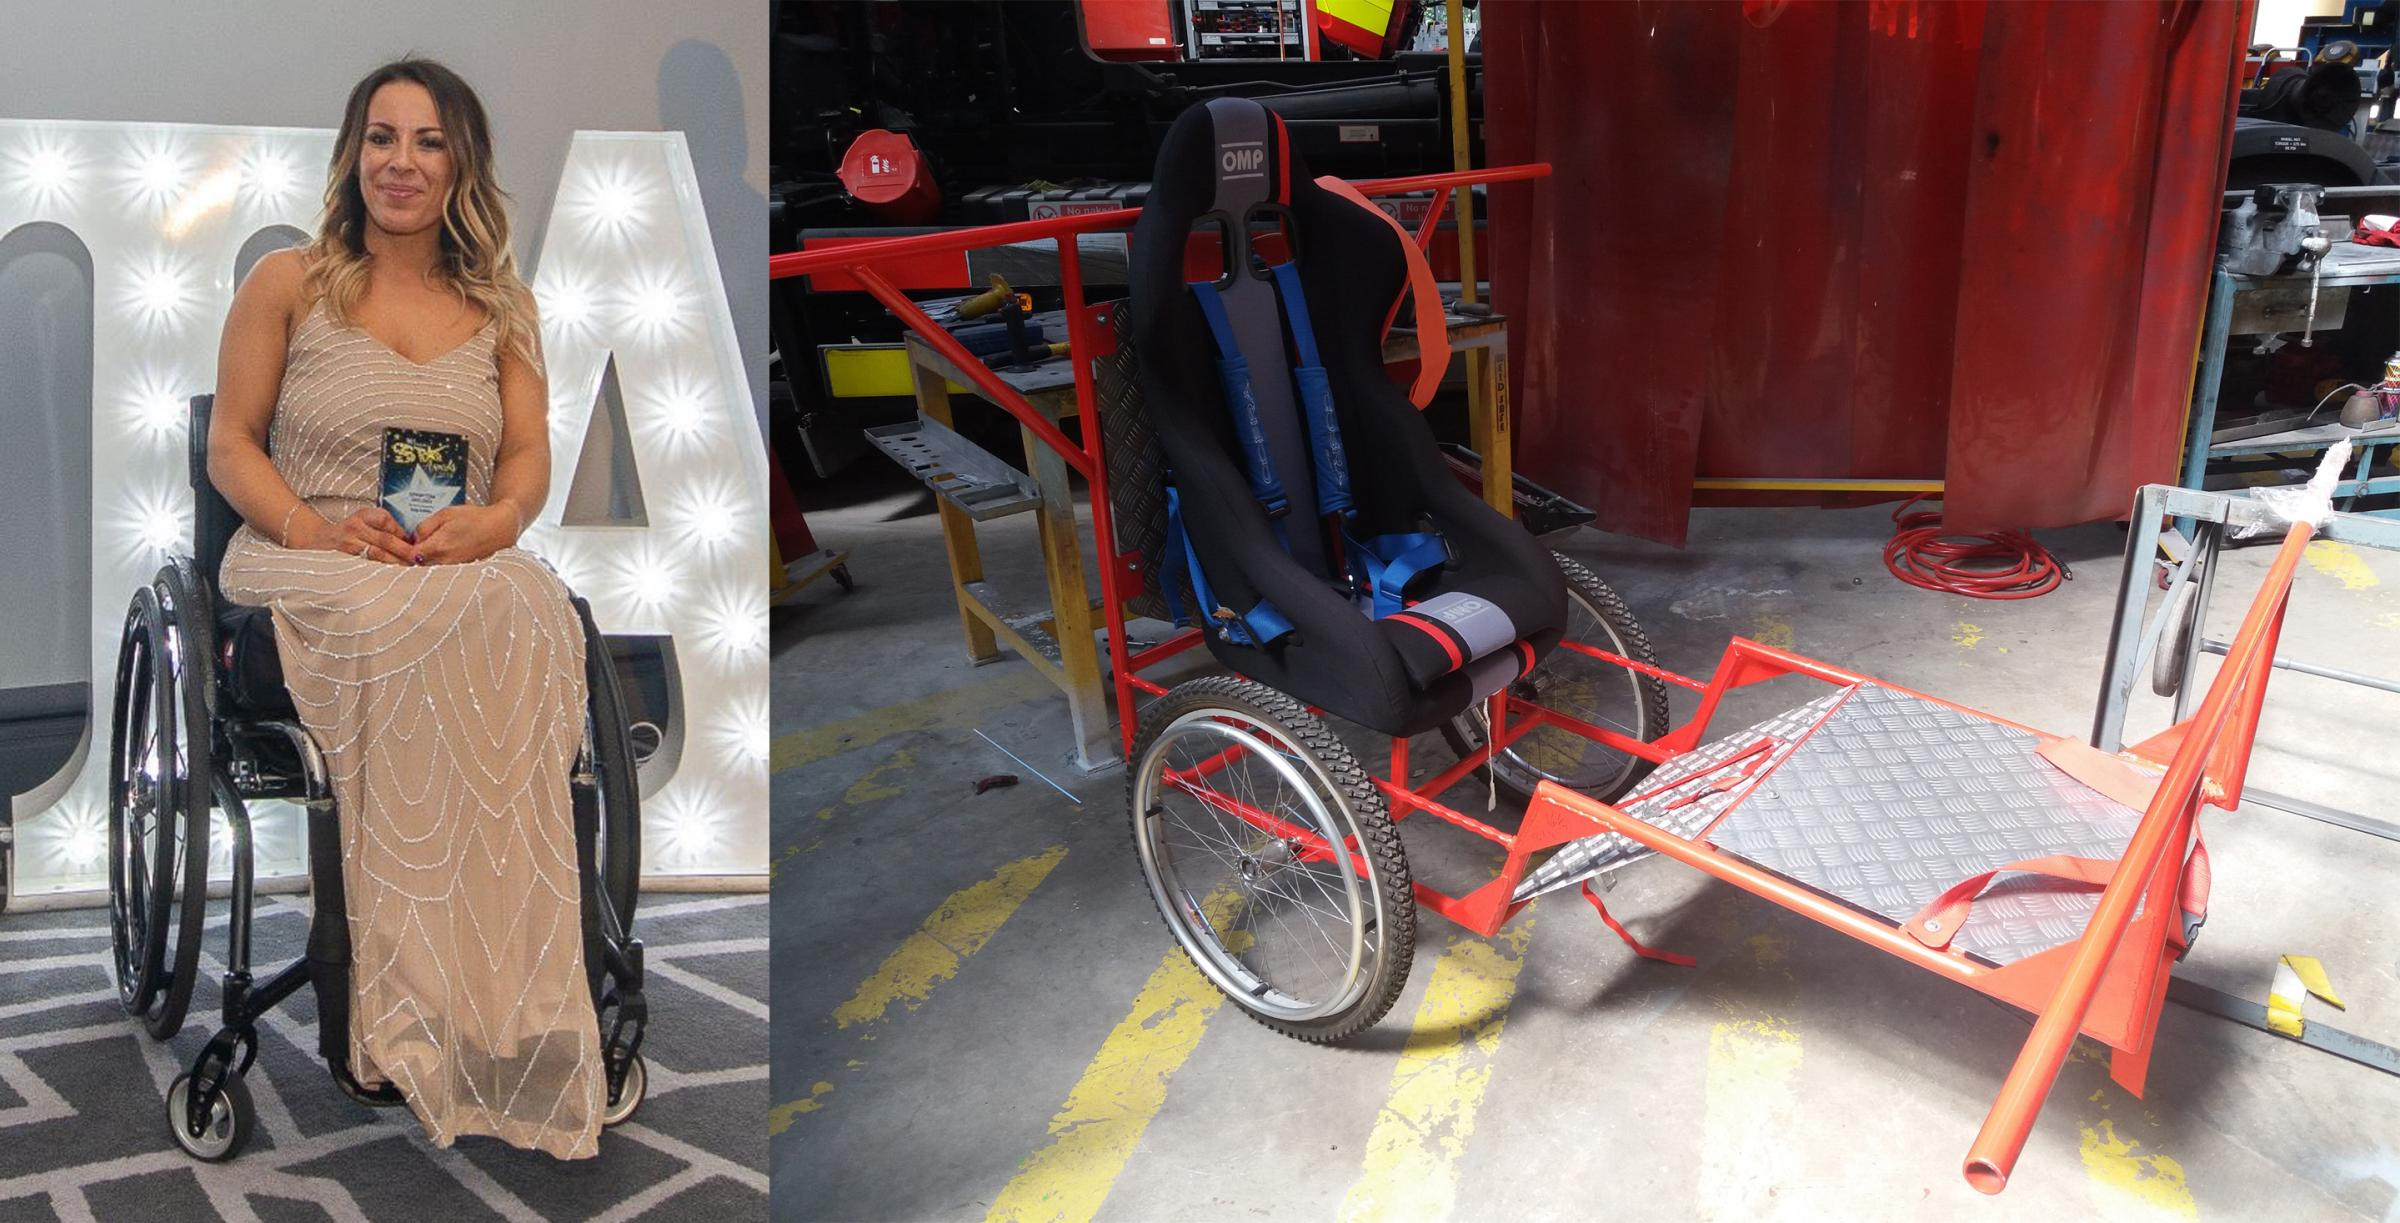 Cheshire lifesavers set to push paralysed colleague Vicki Griffiths to the top of Snowdon in specially-designed chariot